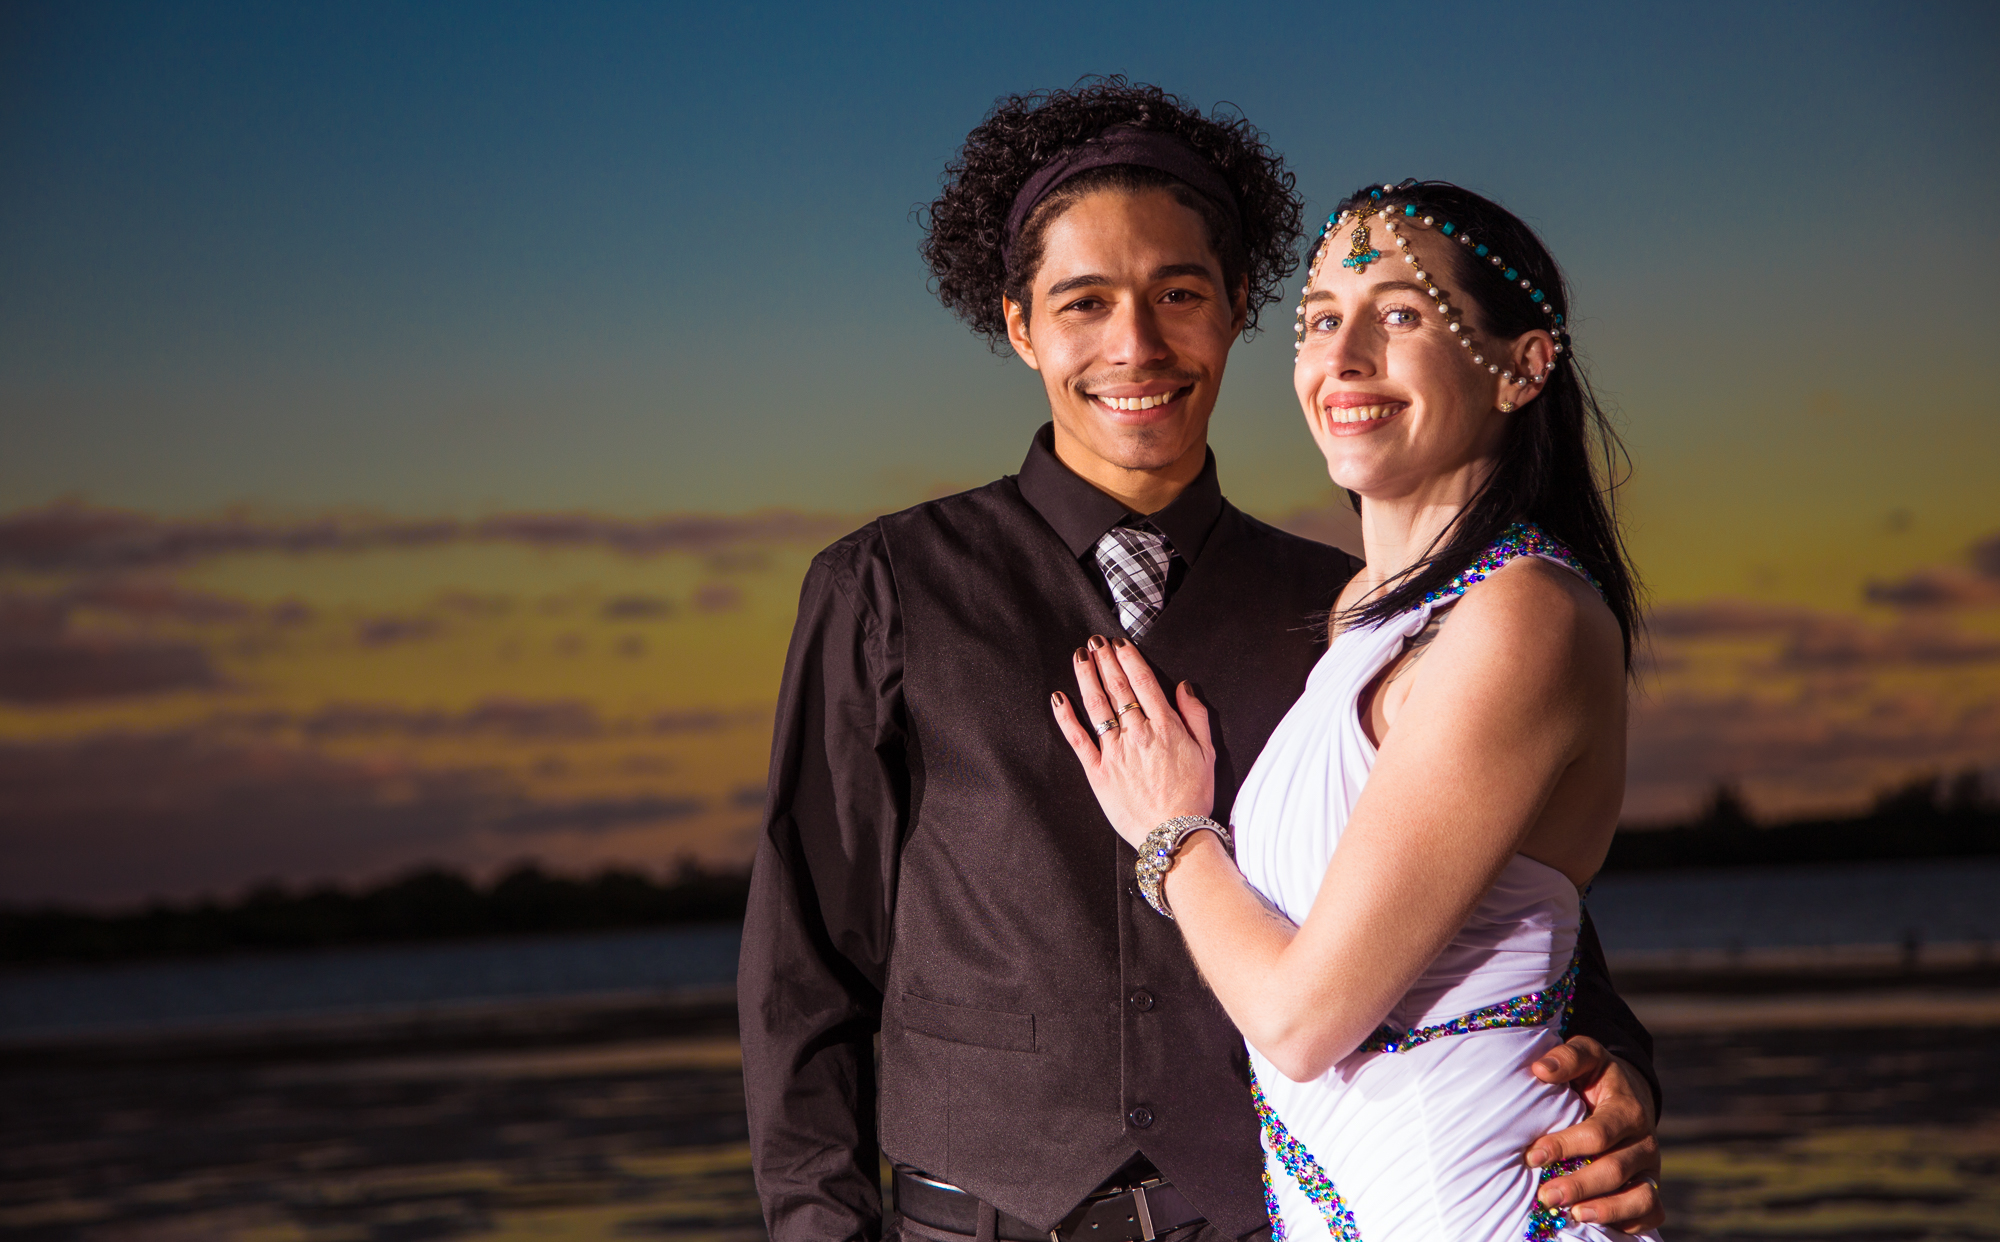 Chathura Jayasinghe is a professional photographer in tampa florida